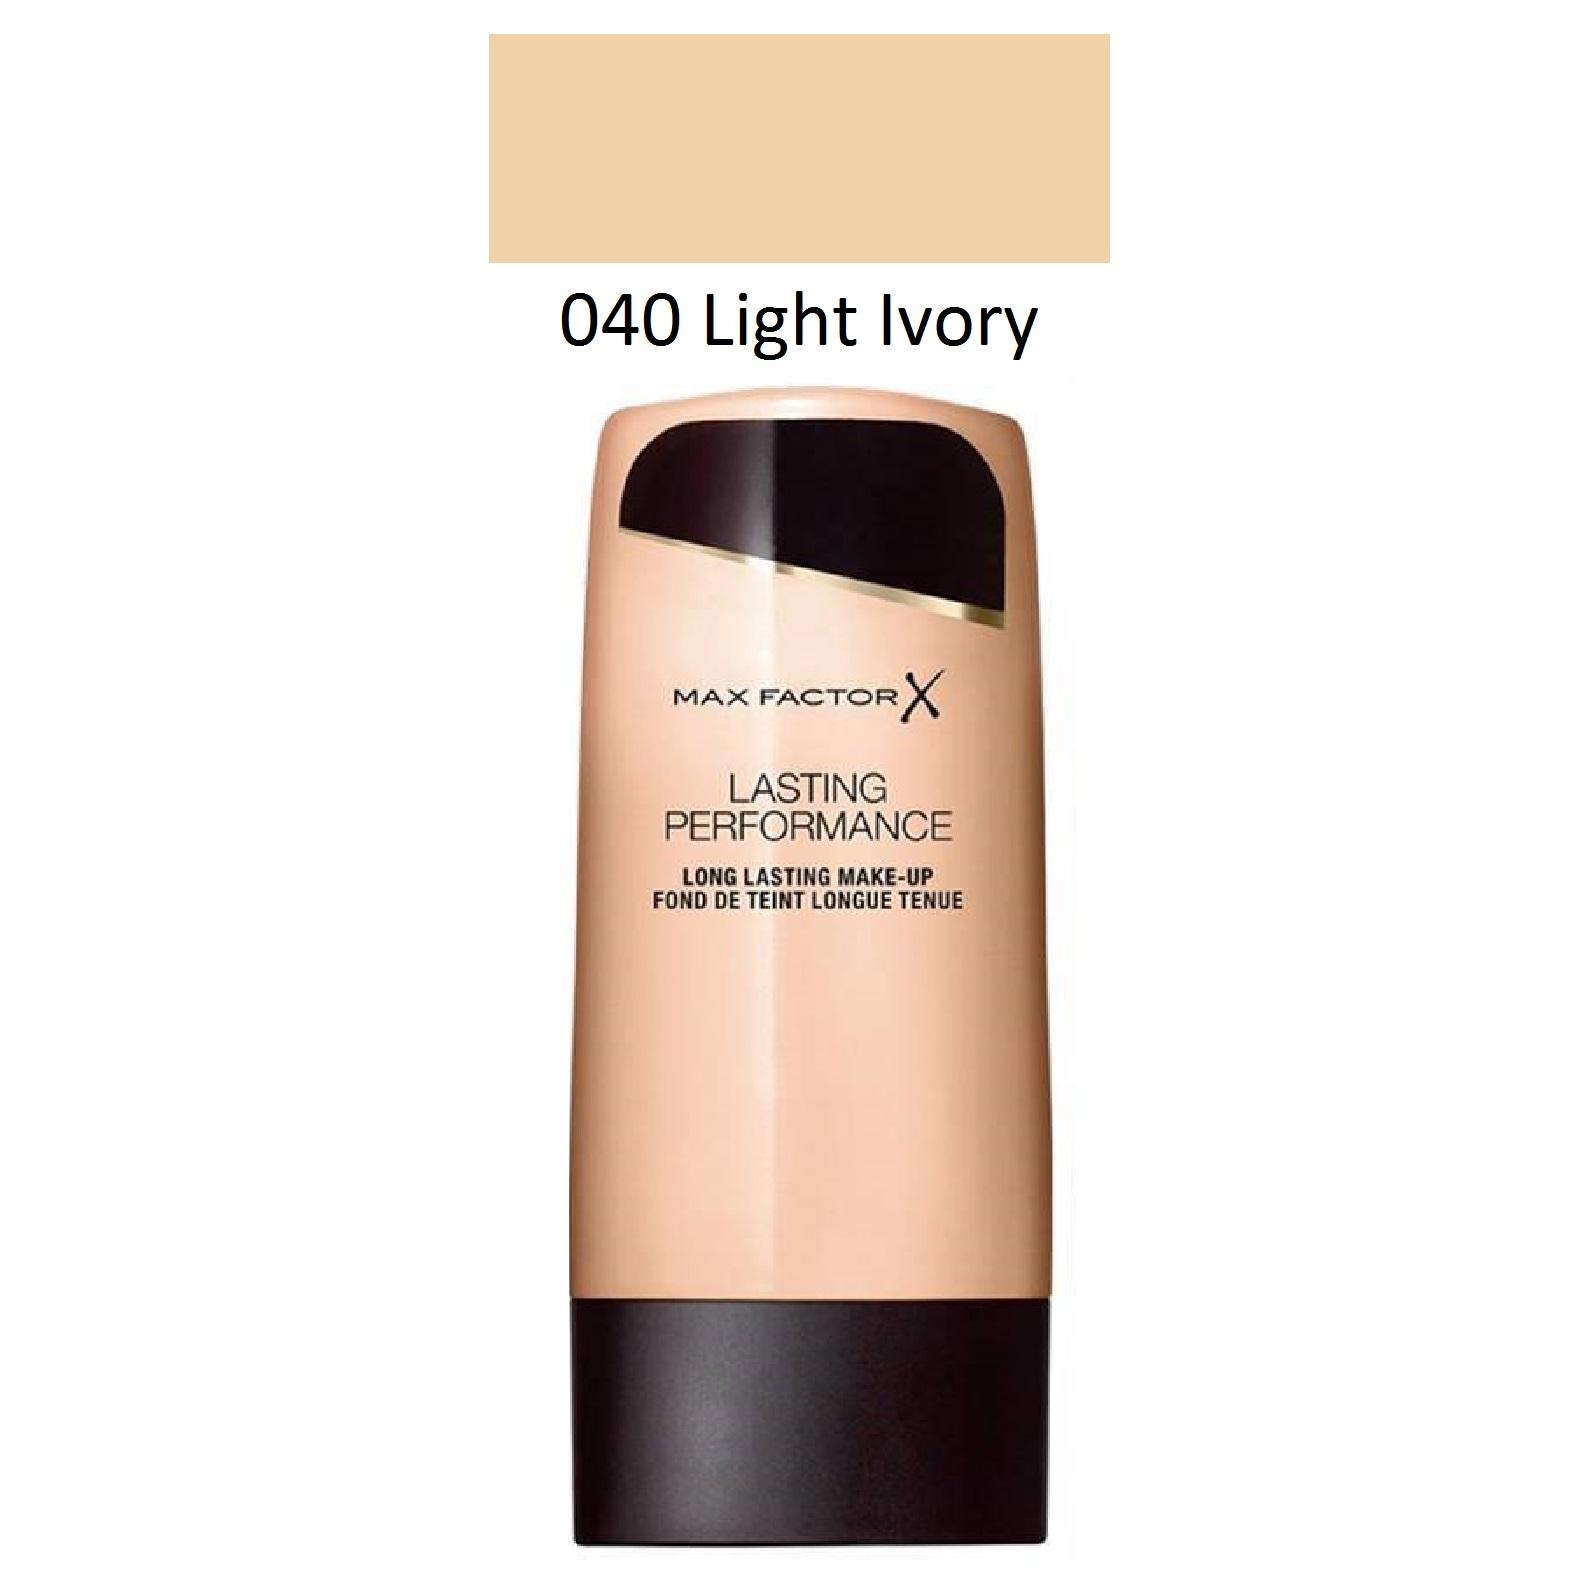 Max Factor Lasting Performance Foundation 040 Light Ivory